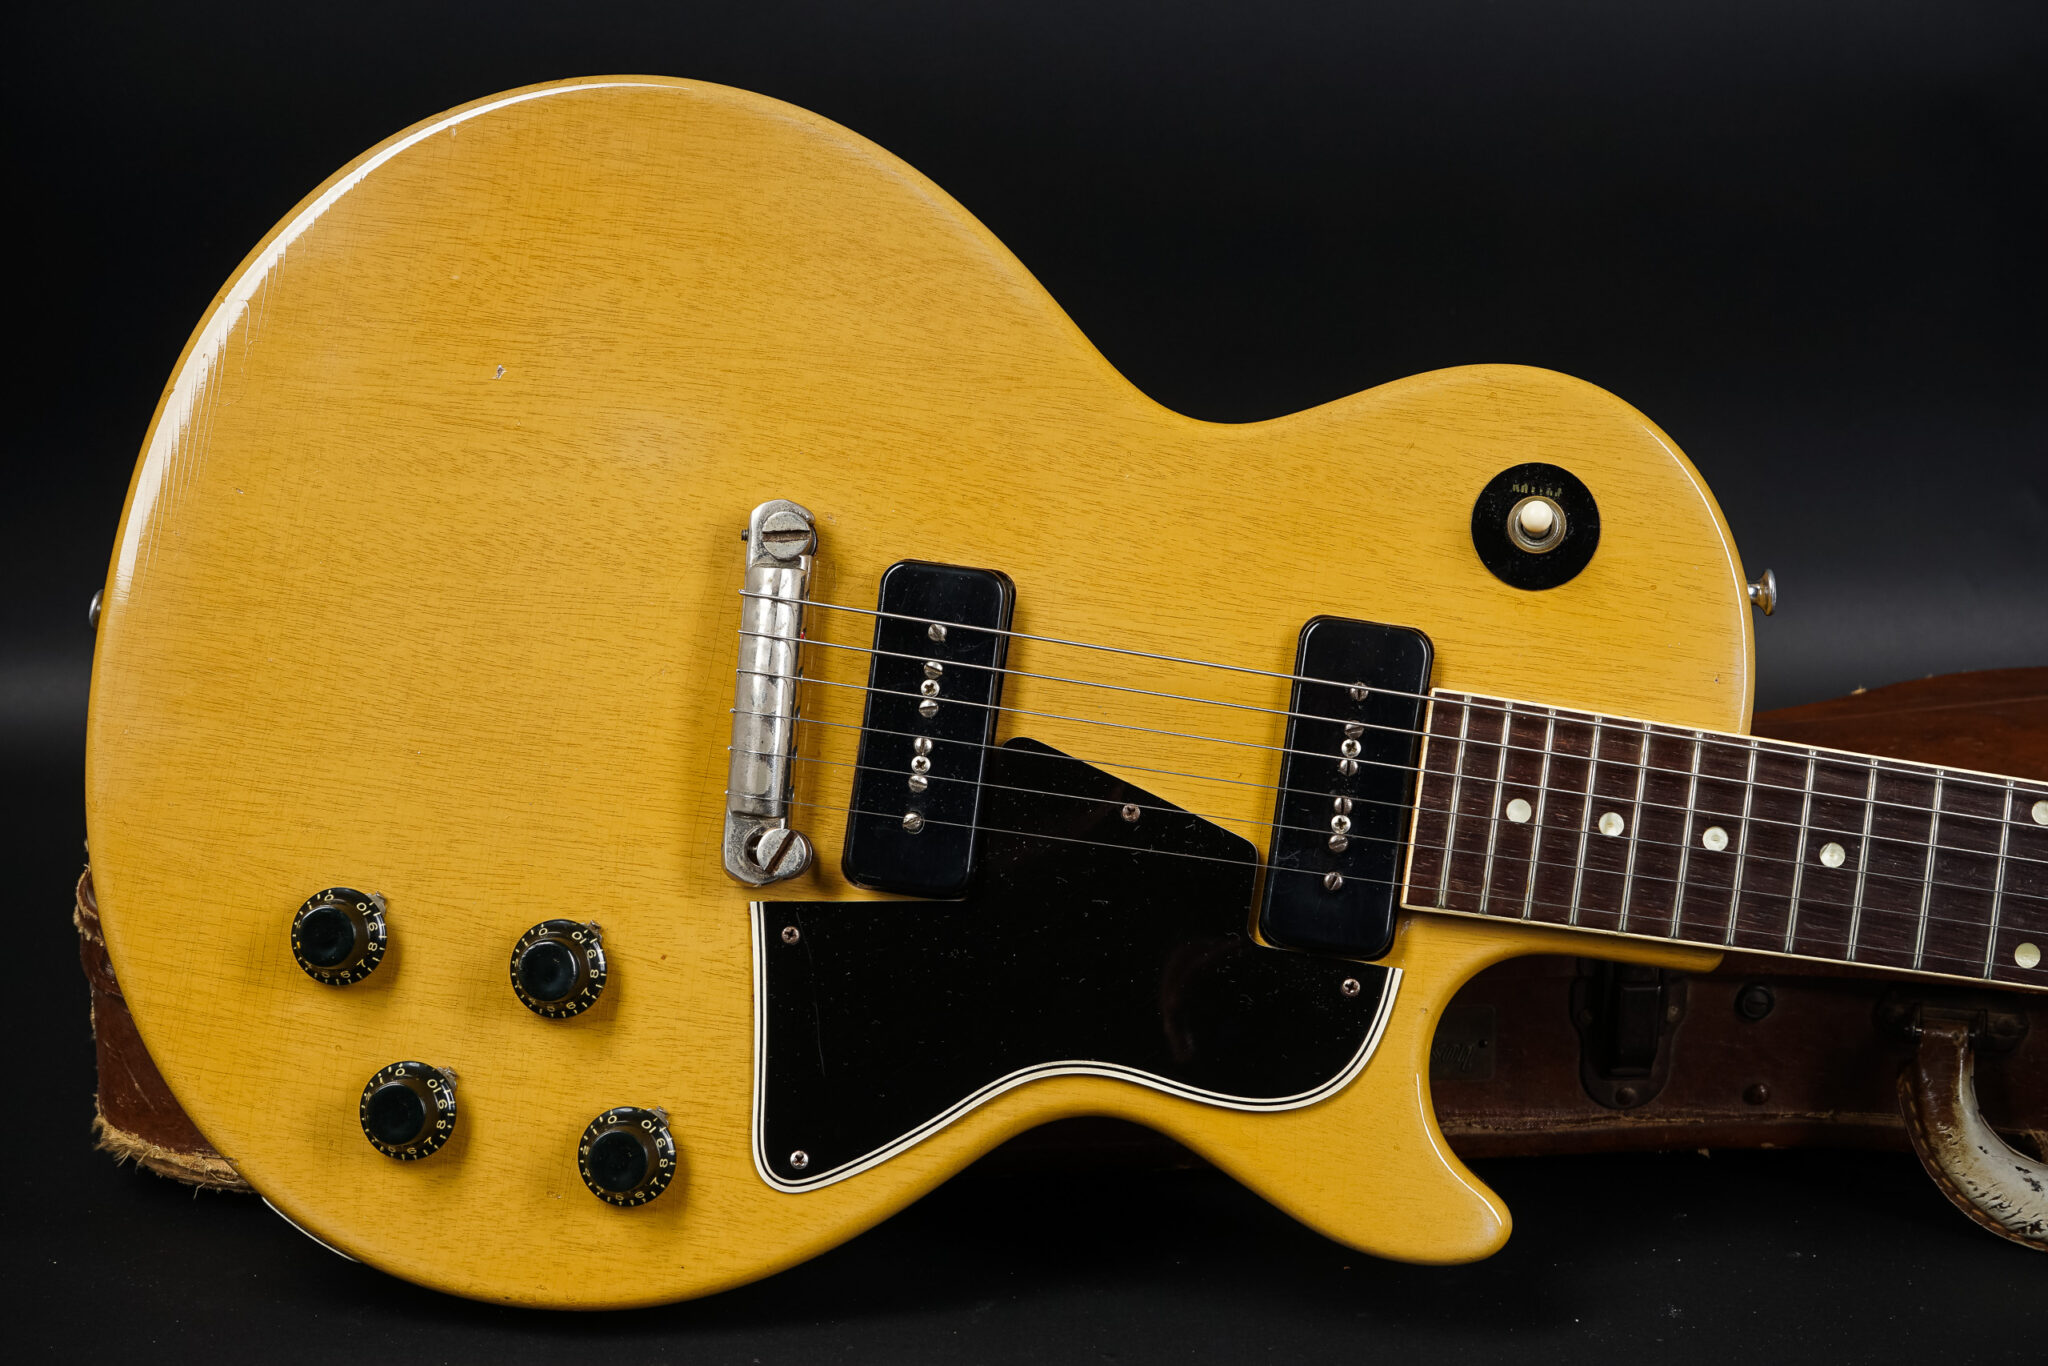 https://guitarpoint.de/app/uploads/products/1957-gibson-les-paul-special-tv-yellow-6/1957-Gibson-Les-Paul-Special-TV-78813-8-2048x1366.jpg